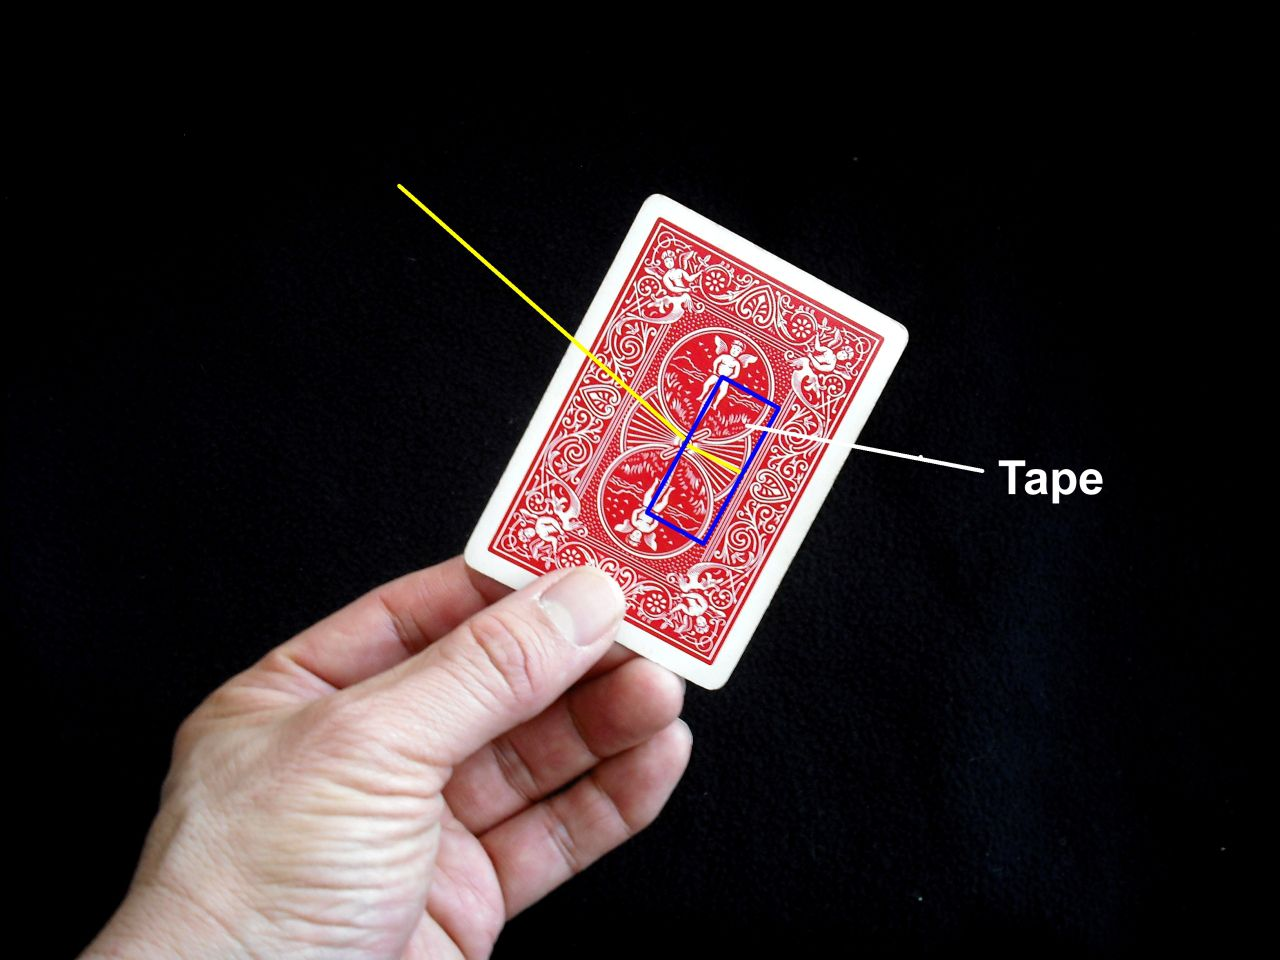 Where to put the tape on the card